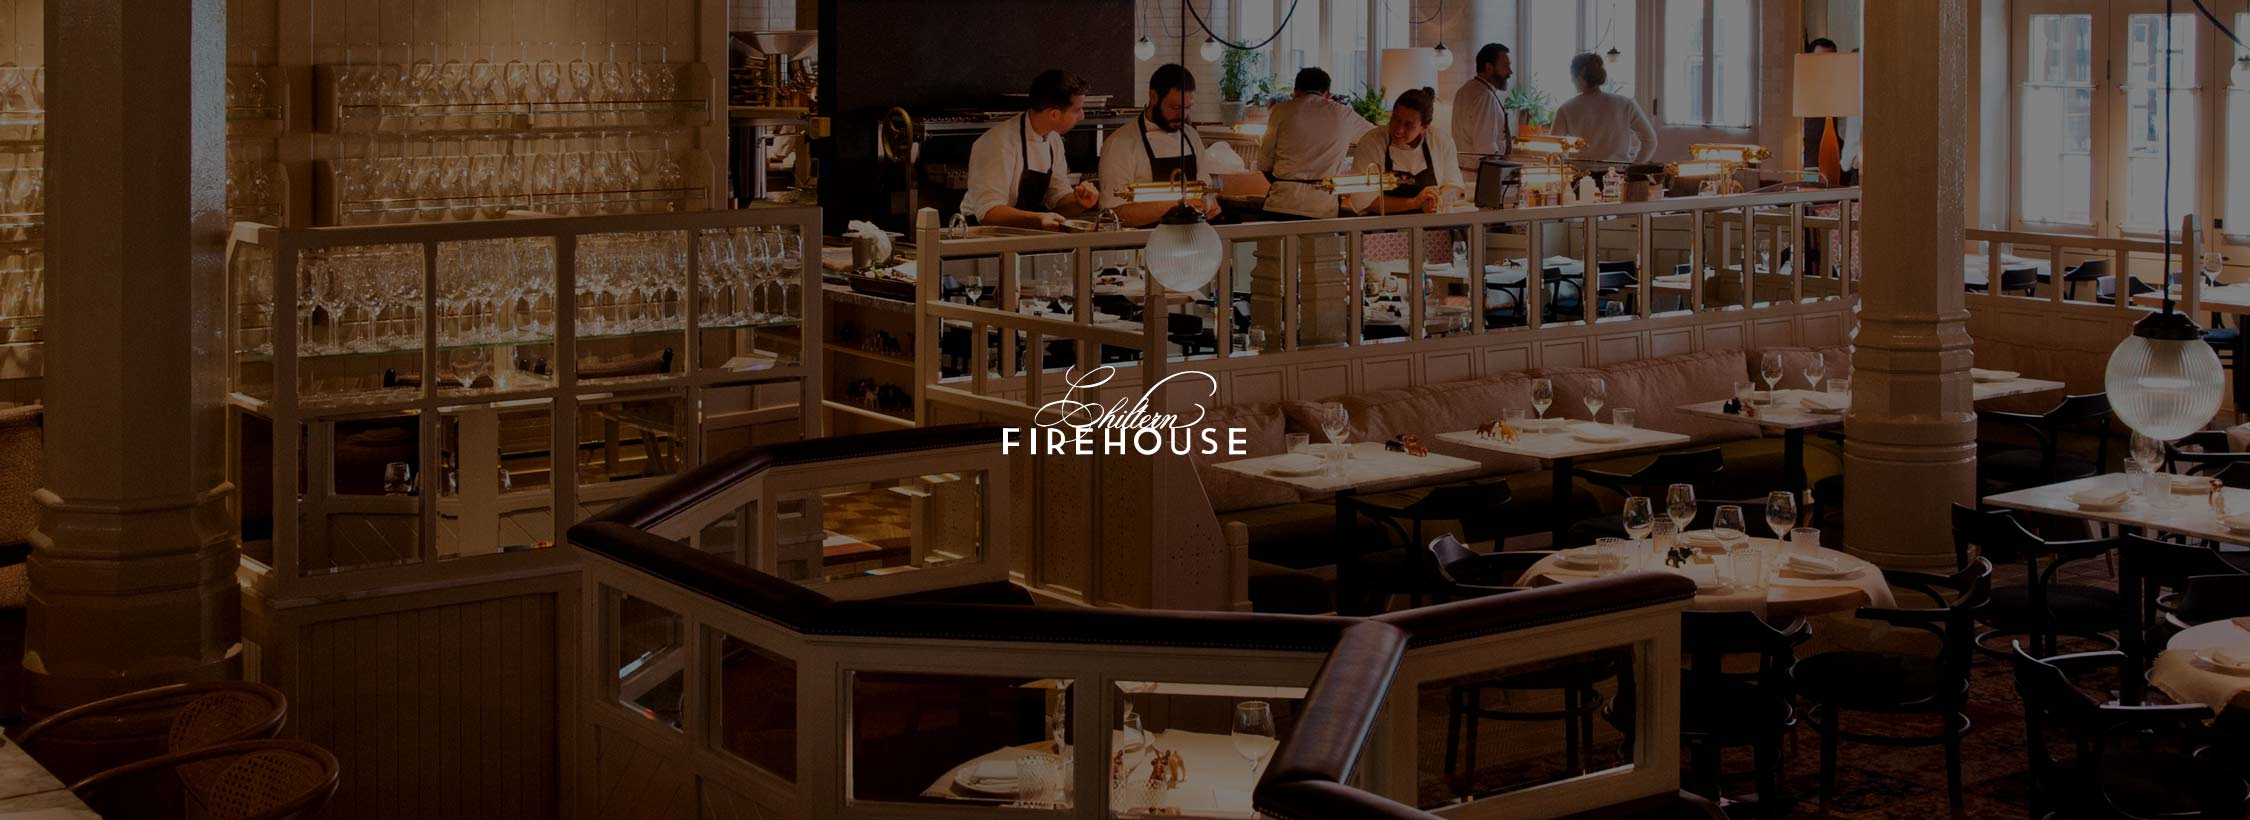 restaurants-supplied-chiltern-firehouse-bg